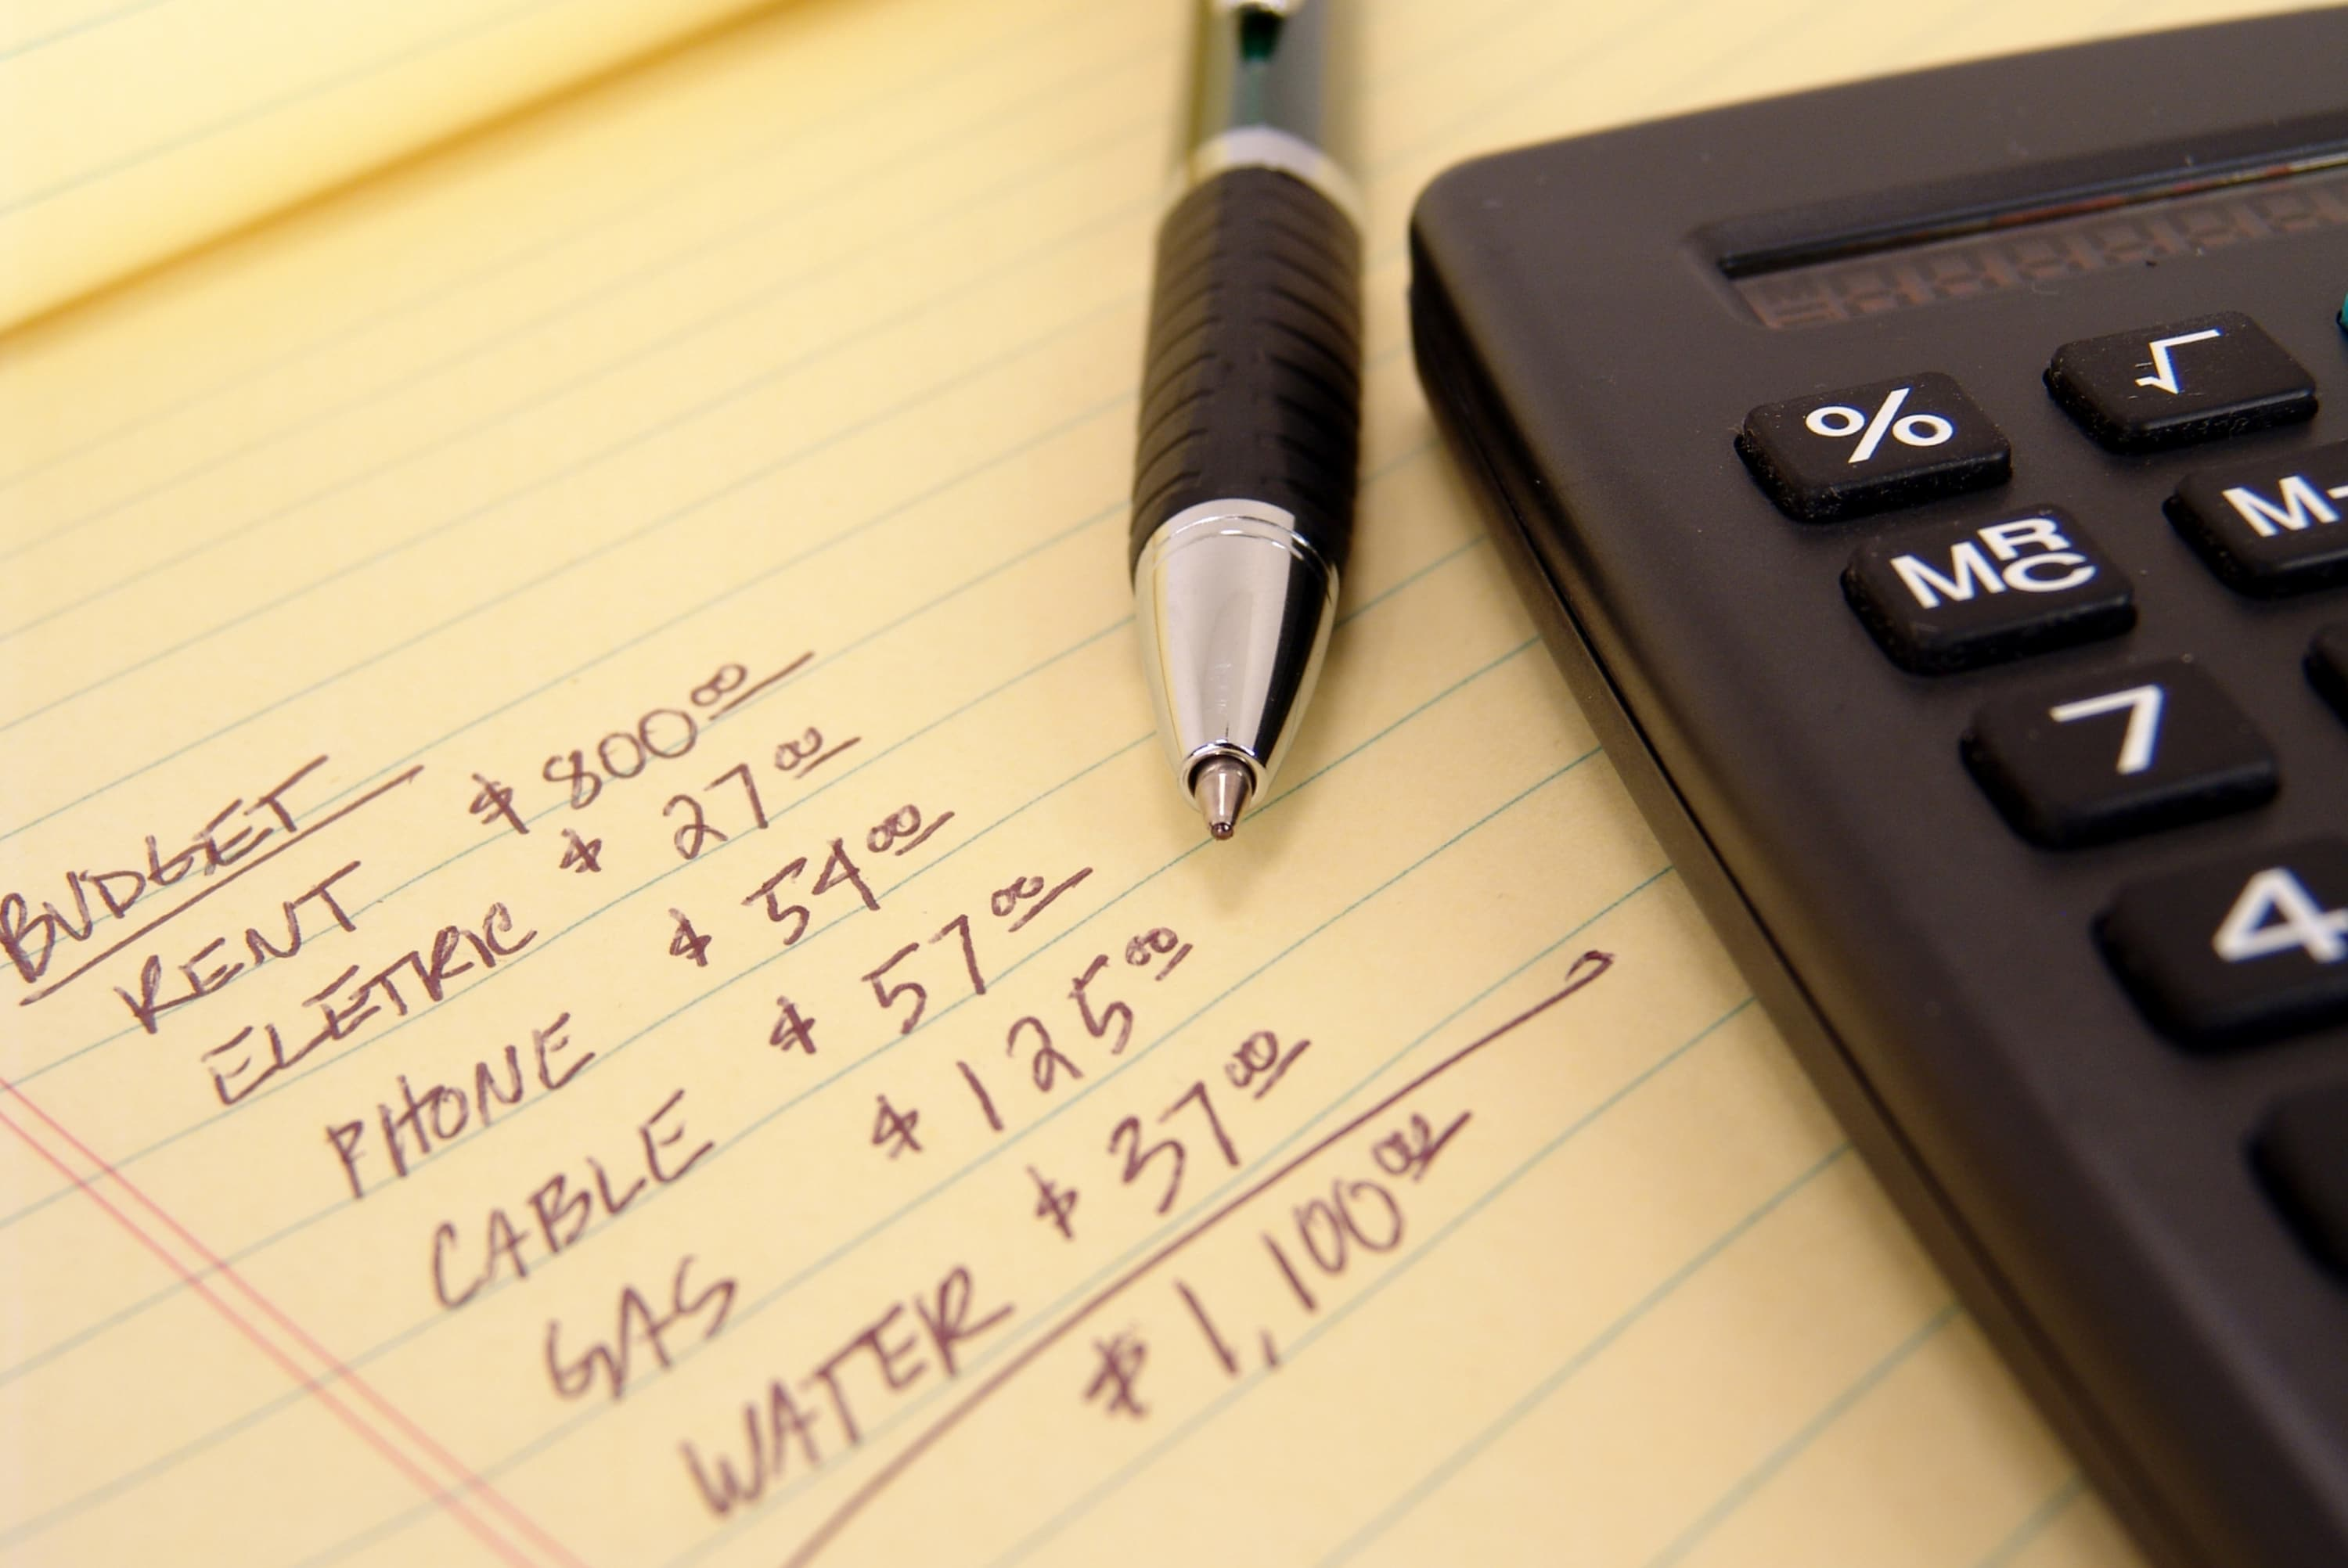 How to Make a Budget - 12 Personal Budgeting Tips for First Timers